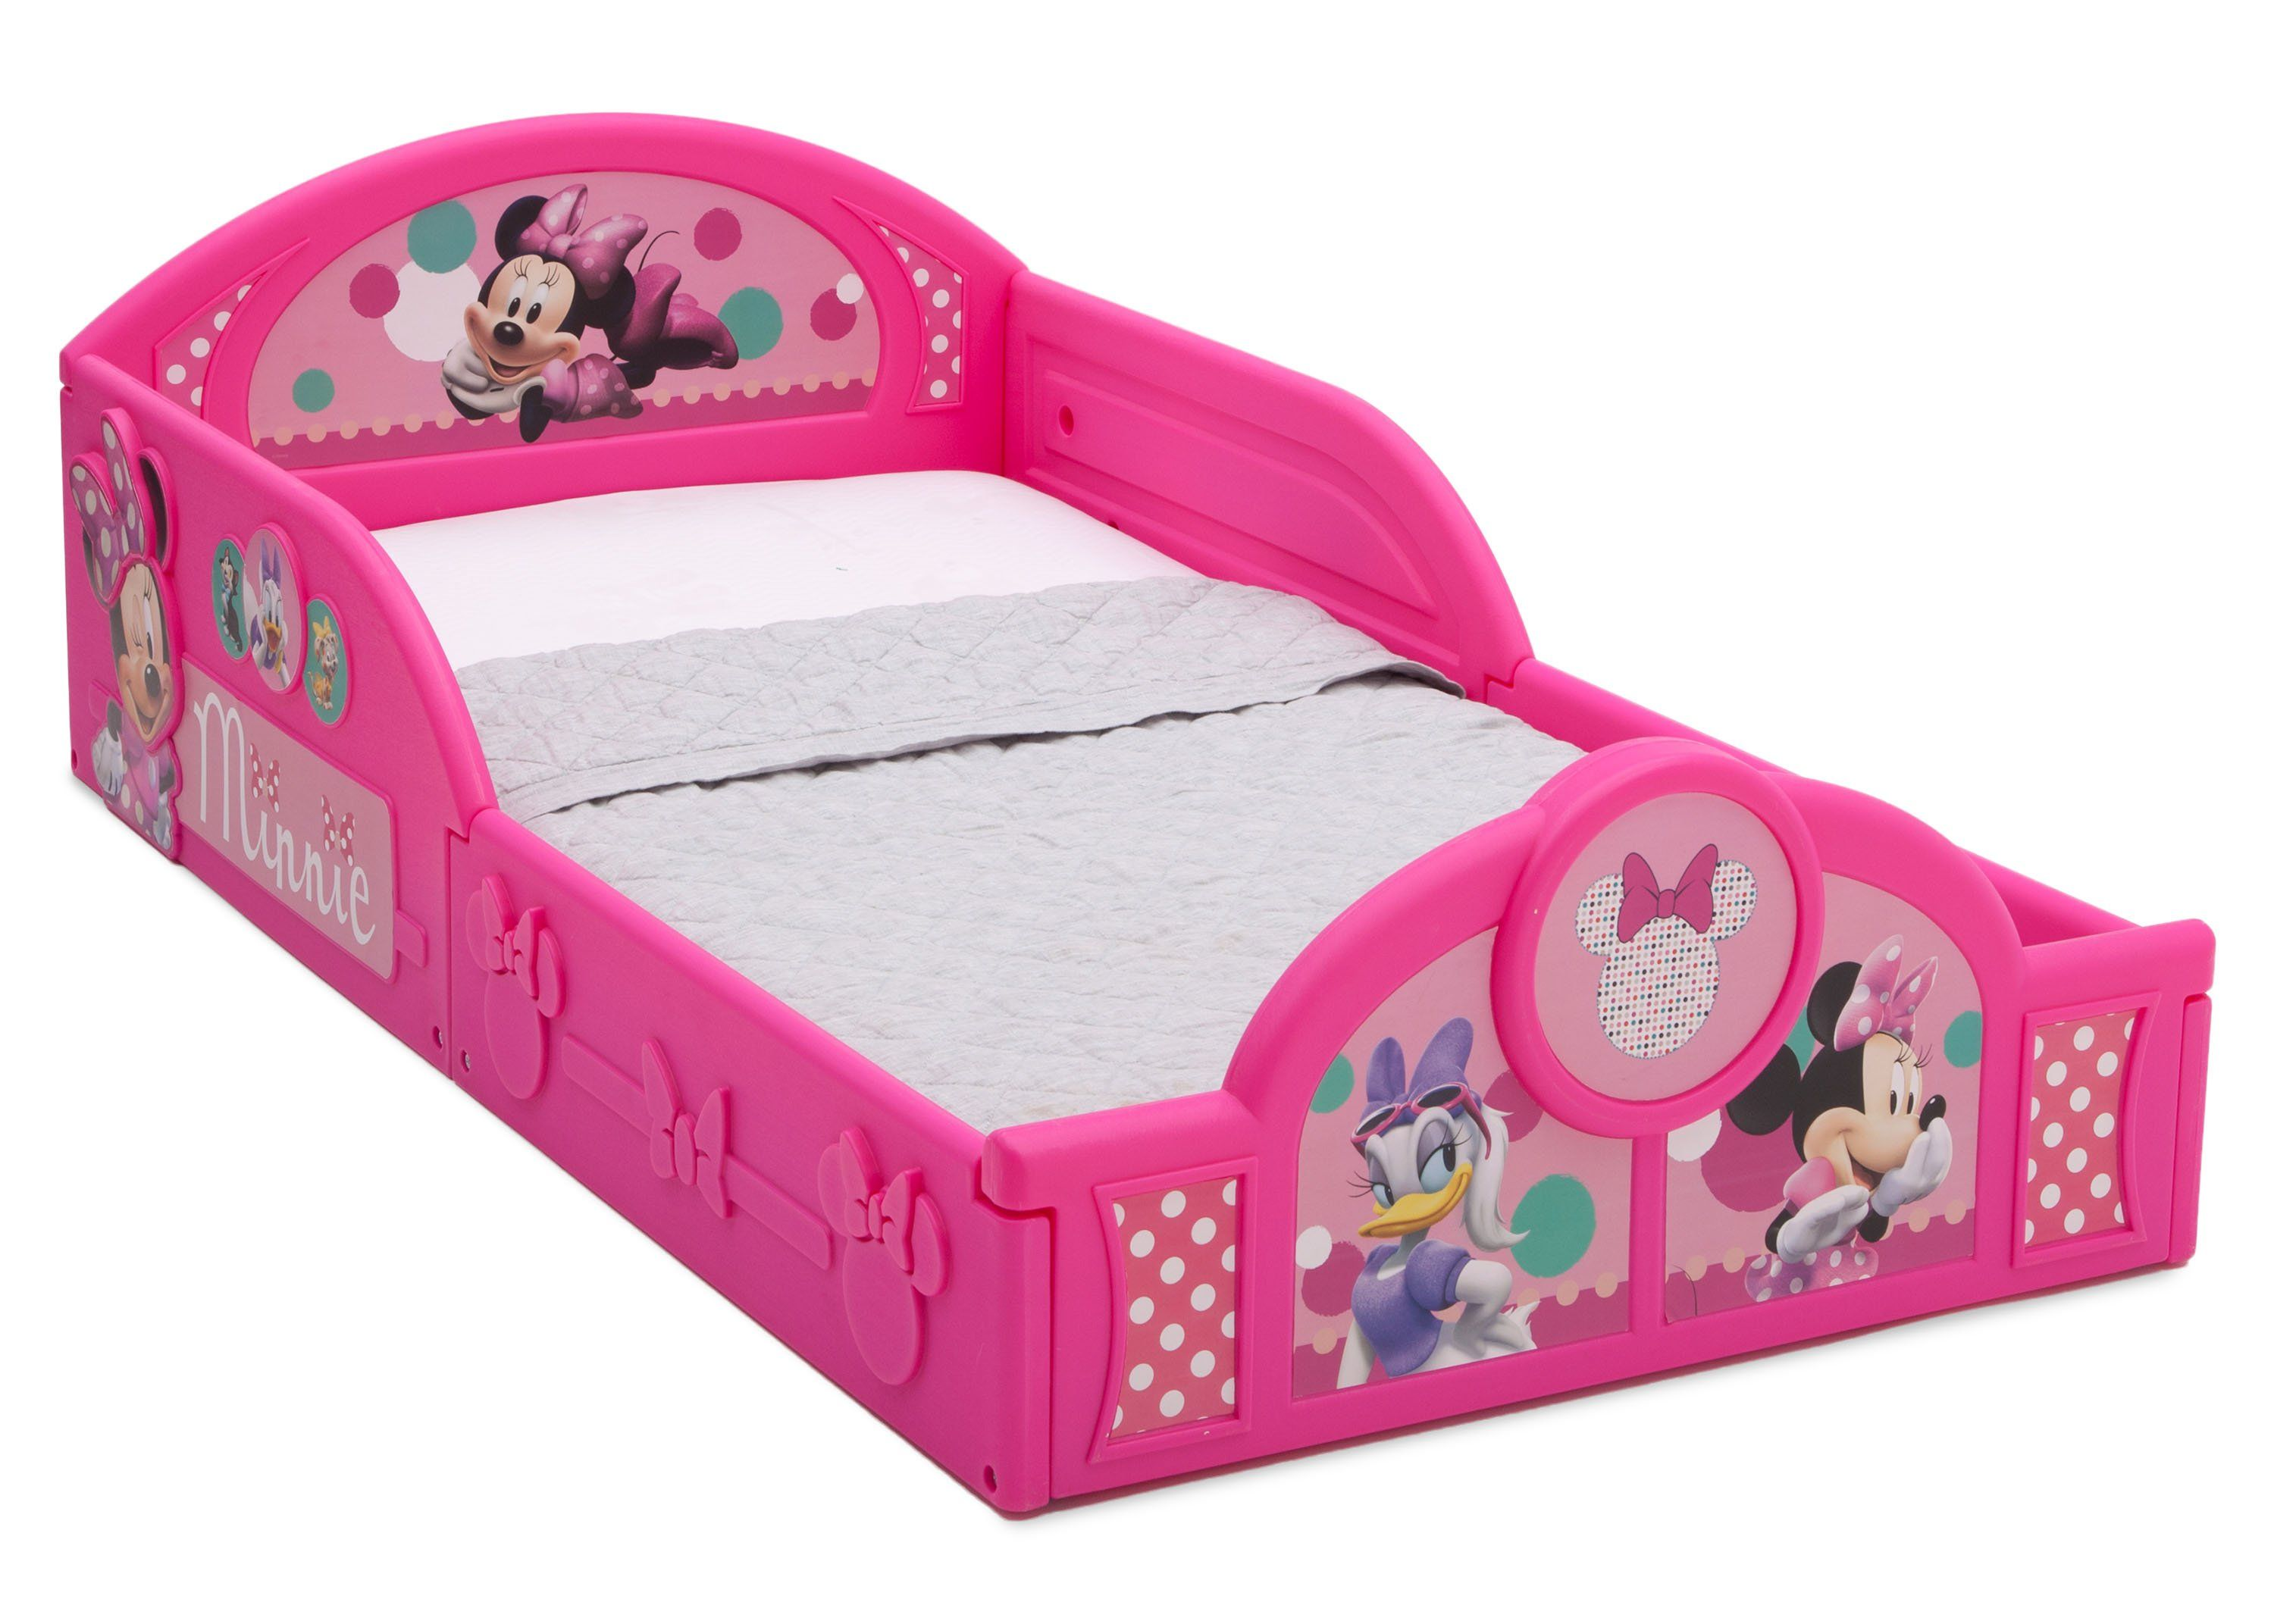 Minnie Mouse Plastic Sleep And Play Toddler Bed Minnie Mouse